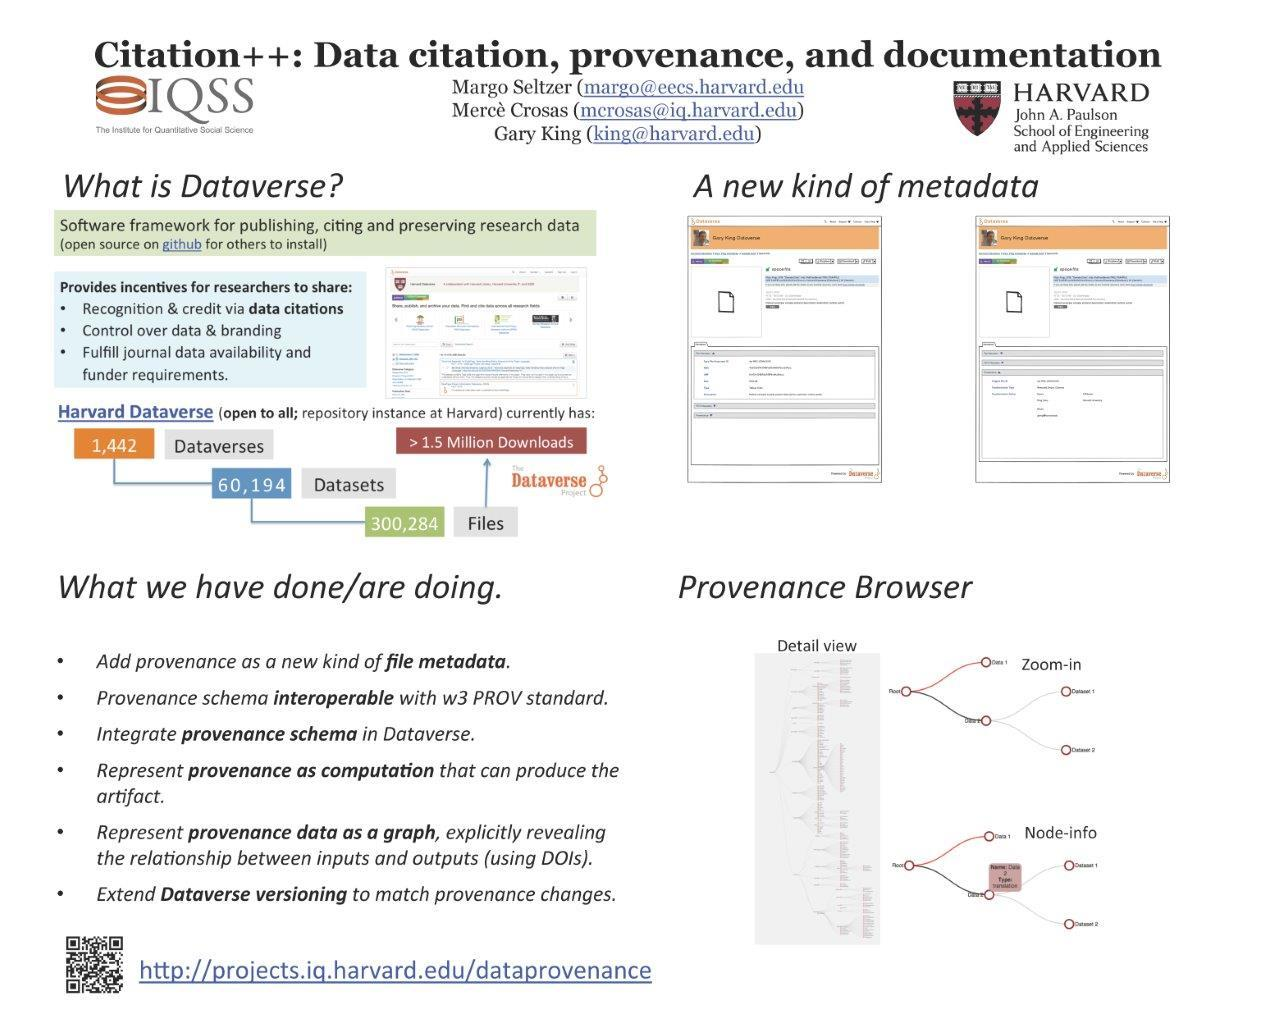 Citation ++: Data citation, provenance and documentation